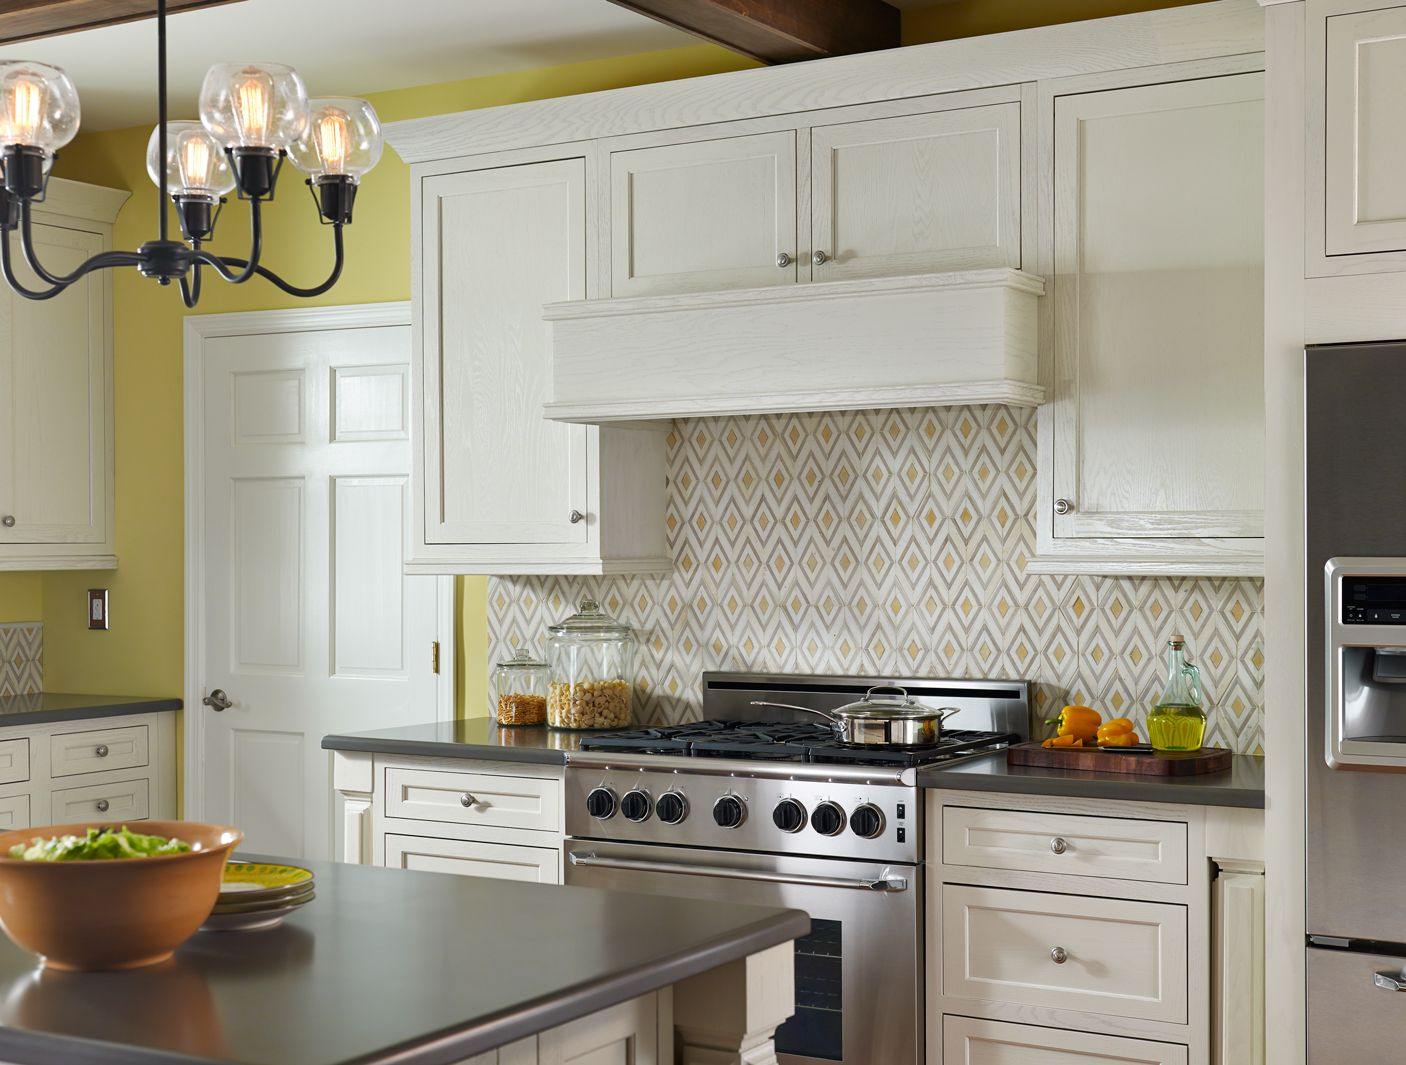 Cape Town Diamond In The Rough Geel 9x15 Mosaic Small Kitchen Cabinets Kitchen Cabinet Kings Kitchen